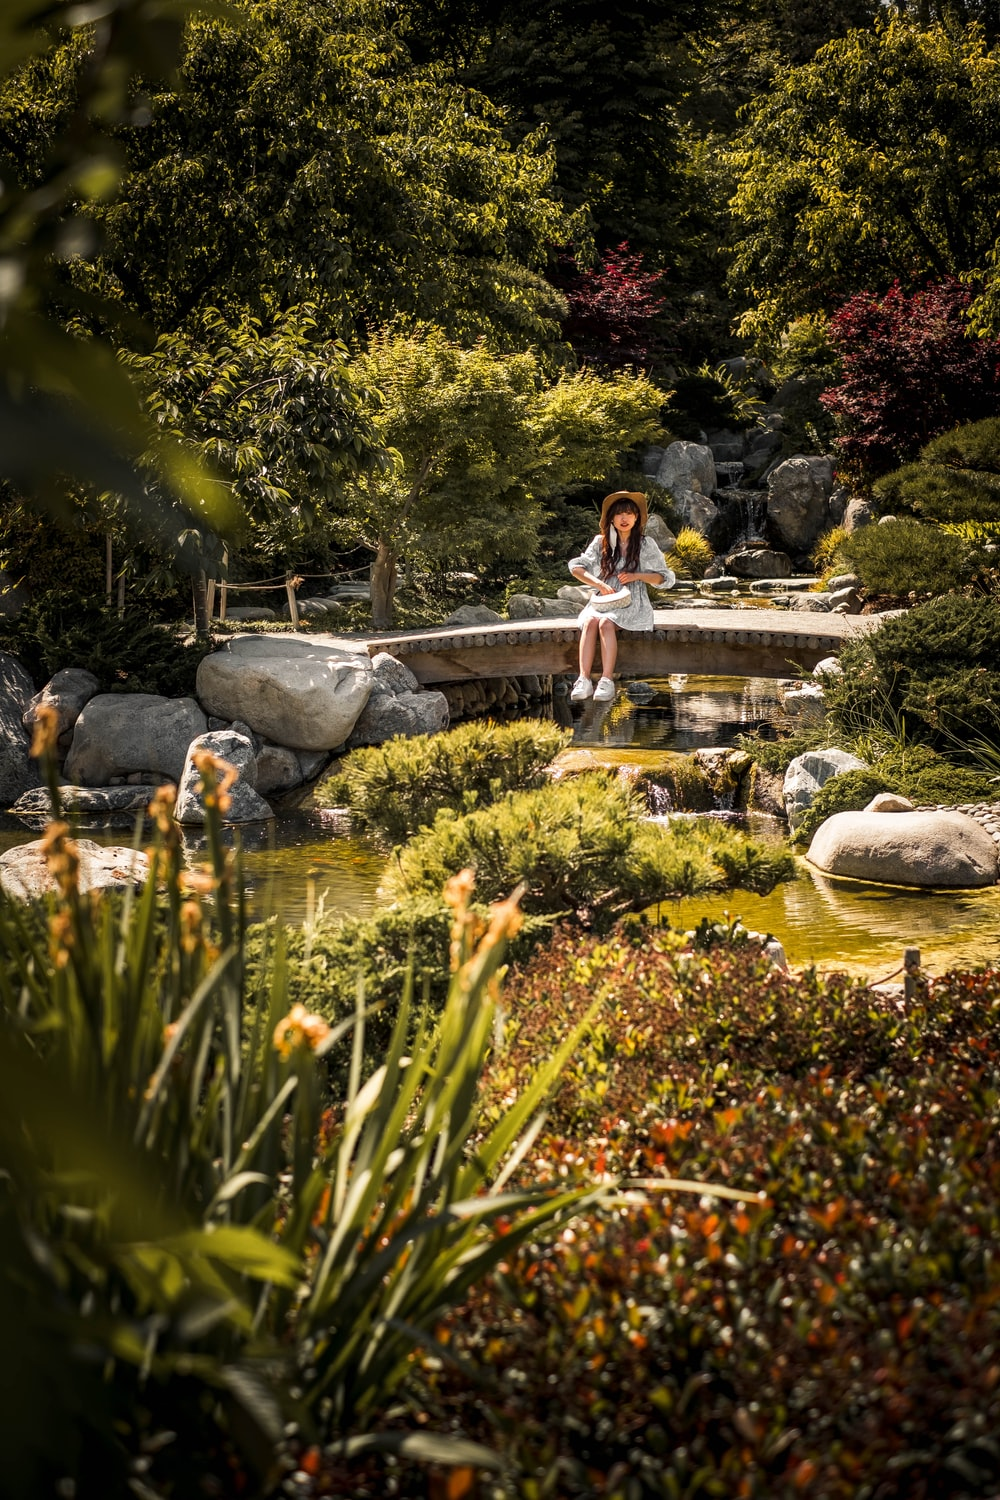 woman in blue dress sitting on rock in front of water fountain